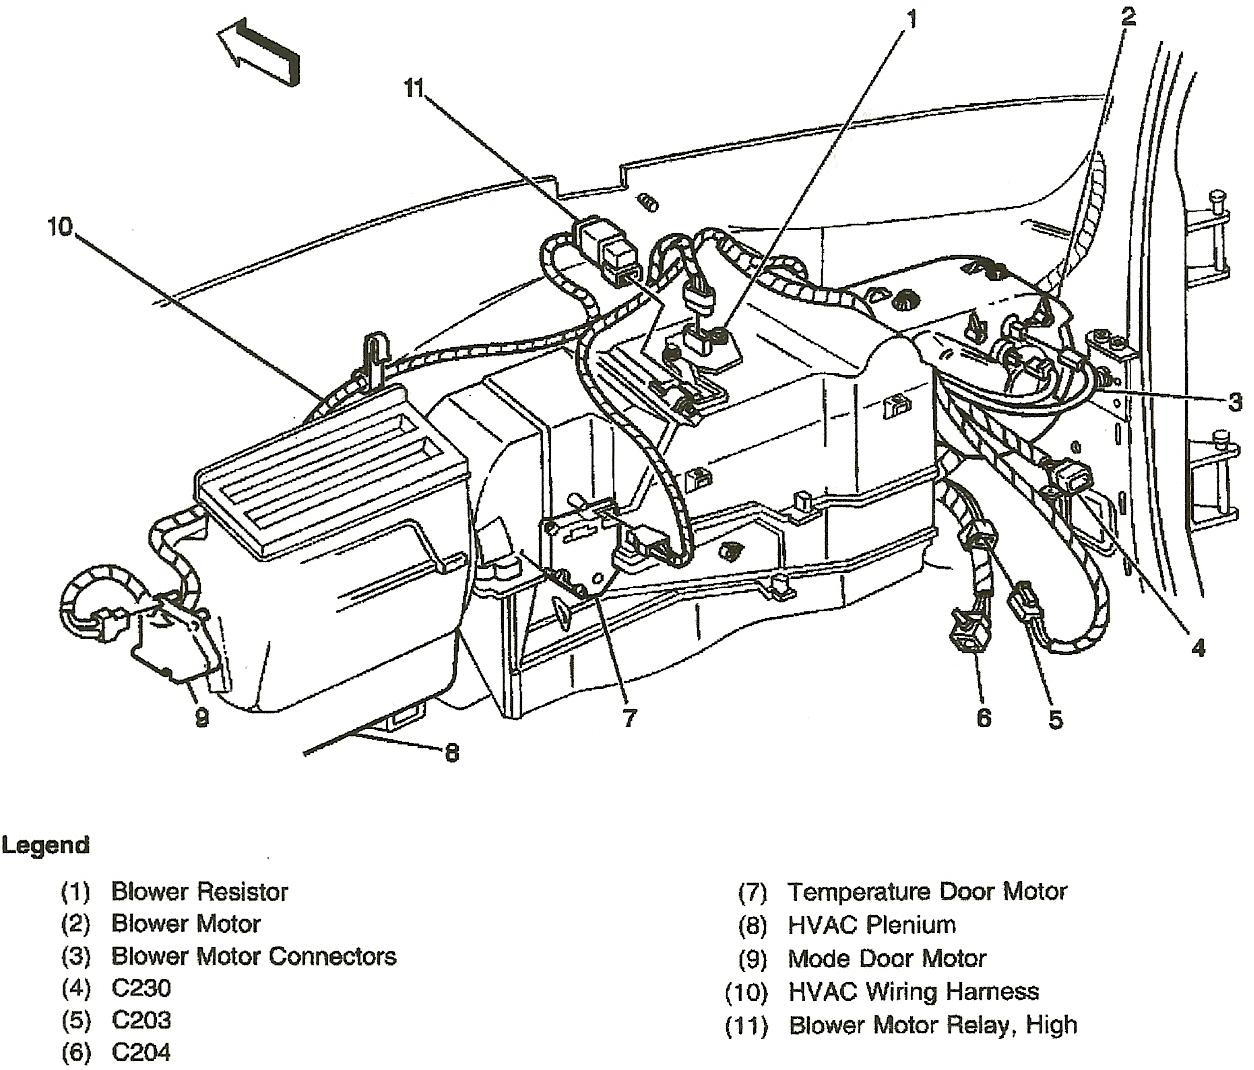 Post ford F550 Wiring Diagram 224035 additionally 2008 Chevy Silverado Fuse Diagram further S10 Fuel Pump Wiring Diagram in addition 2004 Chevy Silverado Parts Diagram 030123tc16 774 Vision Delicious Looking For Drivers Side Seat Plastic Molding 5 together with 99 Escalade Radio Wiring Diagram Wiring Diagrams. on 1998 chevy silverado radio wiring diagram